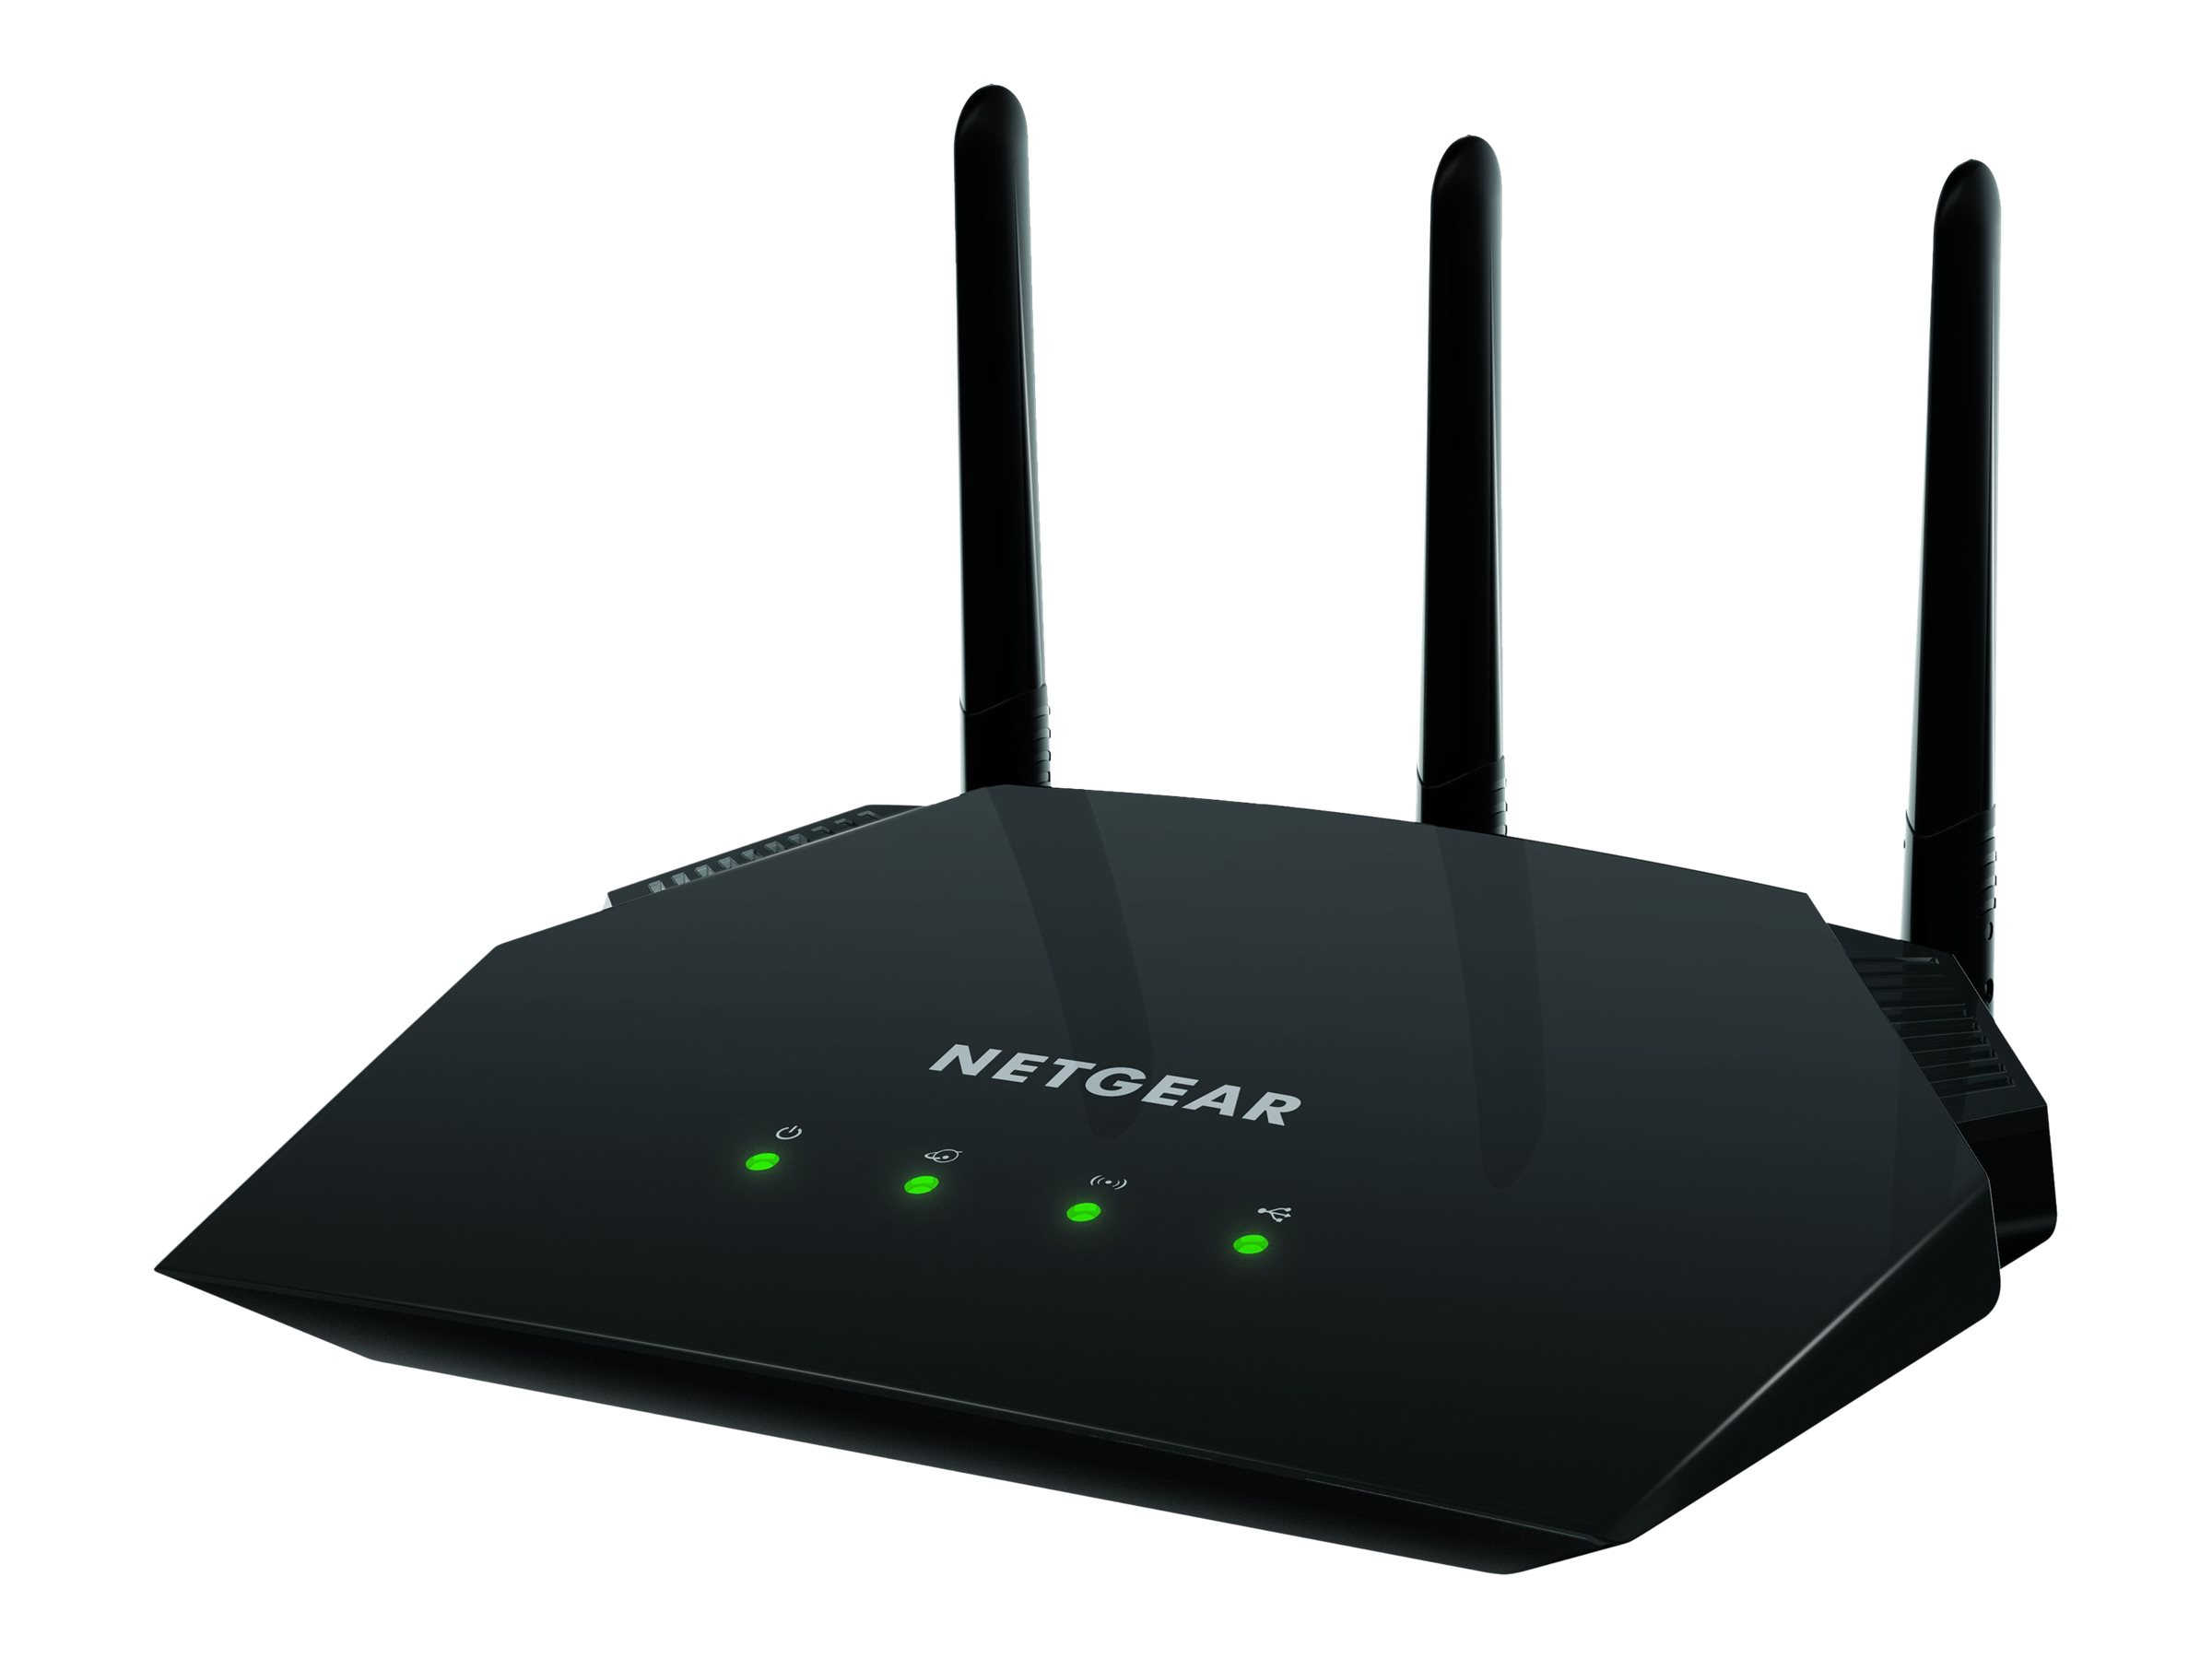 NETGEAR WAC124 - wireless router - 802.11a/b/g/n/ac - desktop, wall-mountable